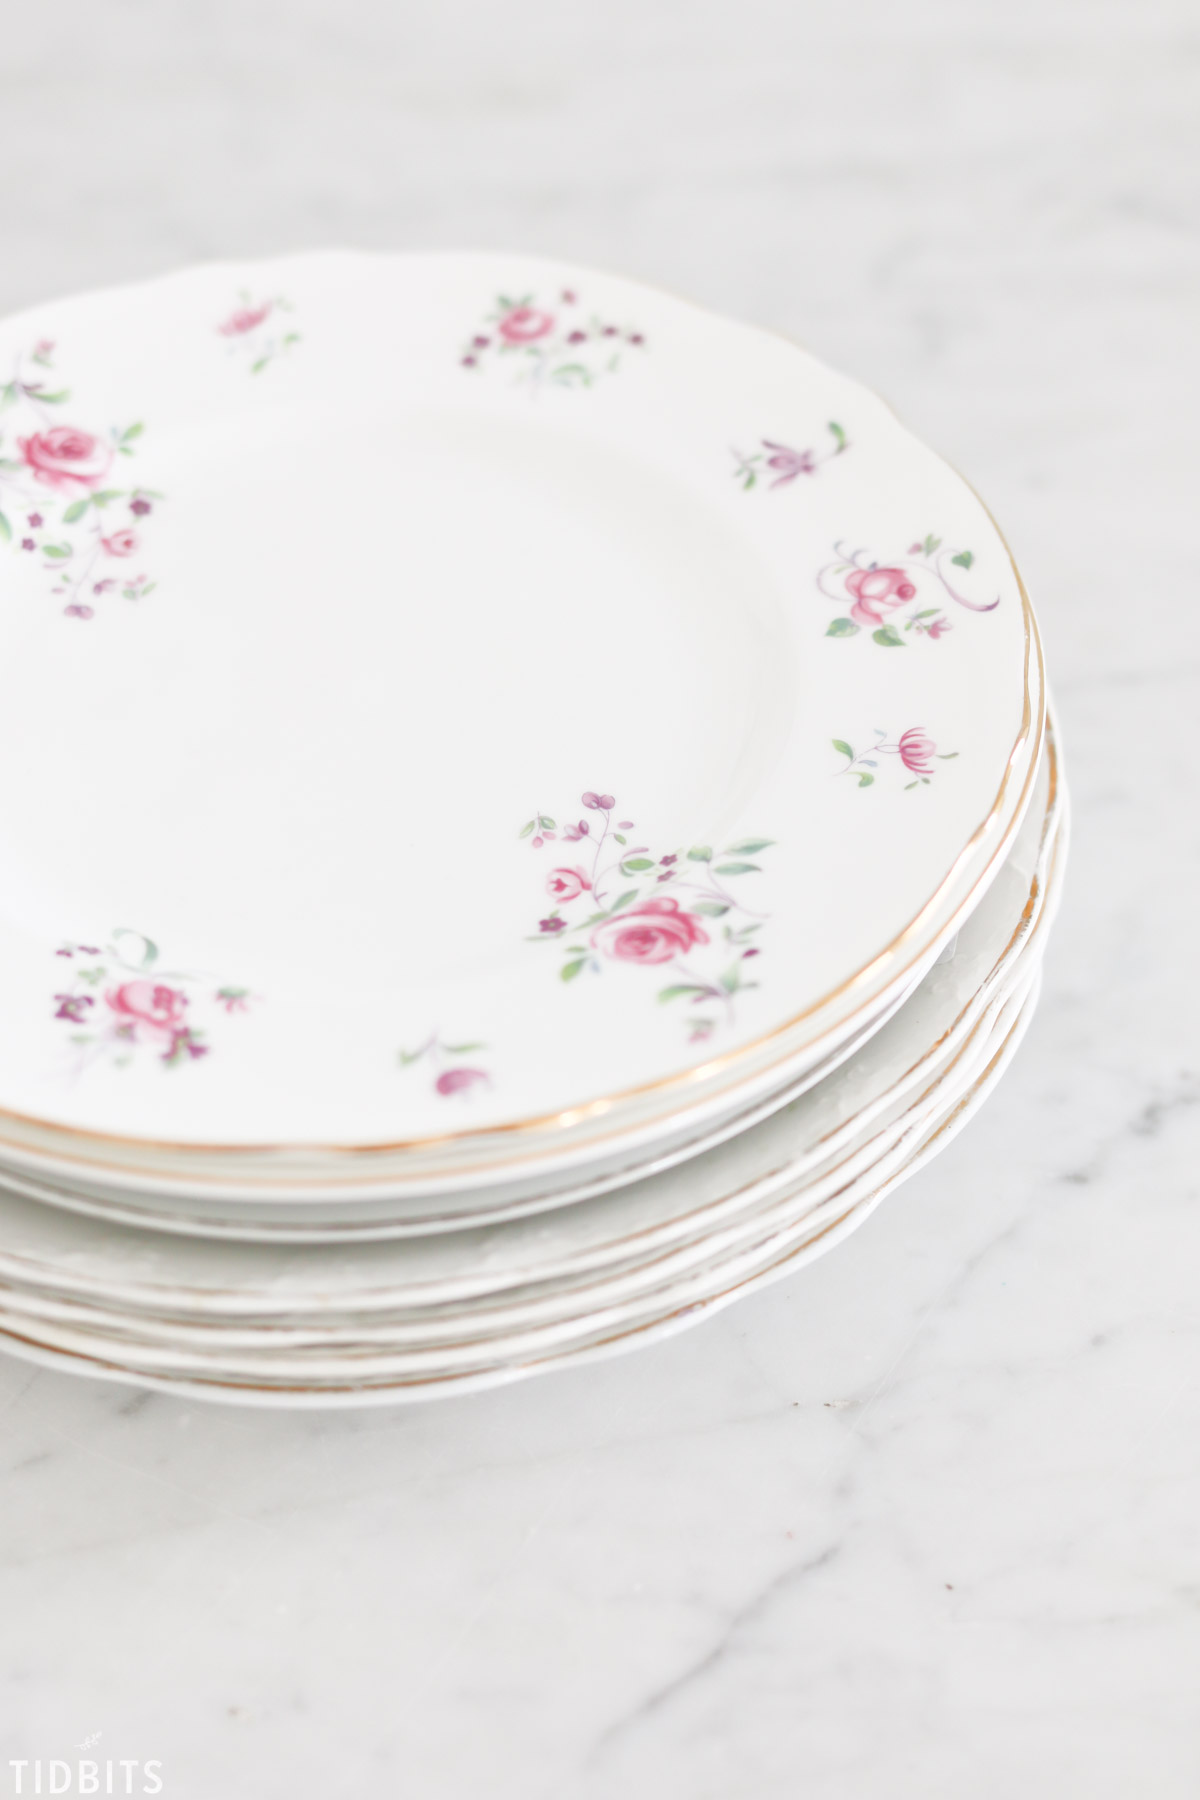 How to hang plates on a wall, by TIDBITS.